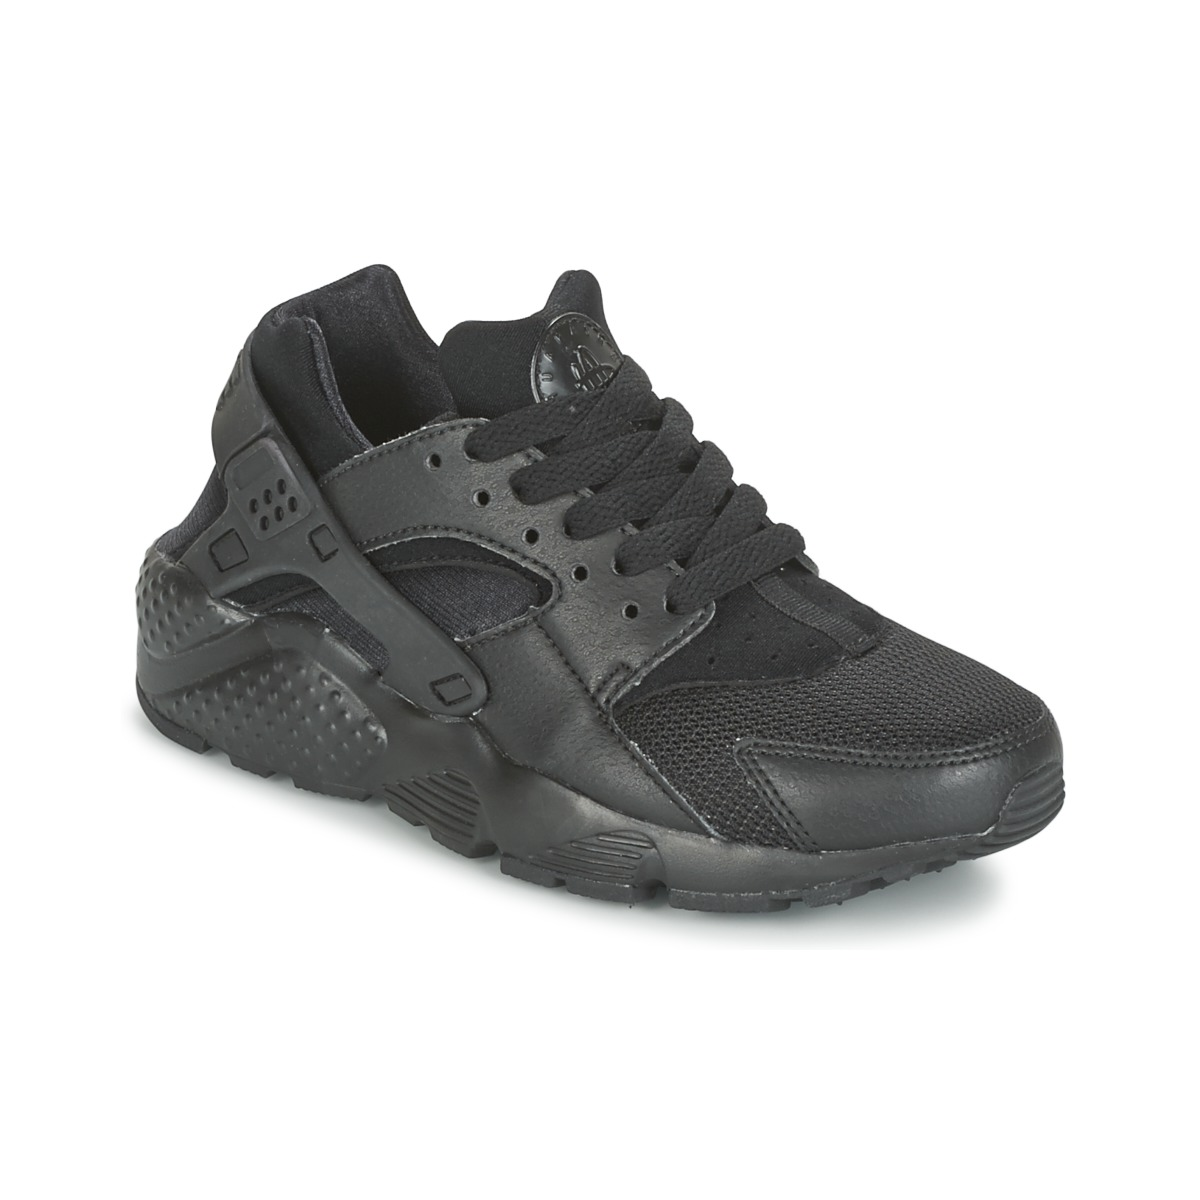 5cef0295cb545 ... best price nike huarache run junior noir chaussures baskets basses  enfant 8900 2aac6 25b7f